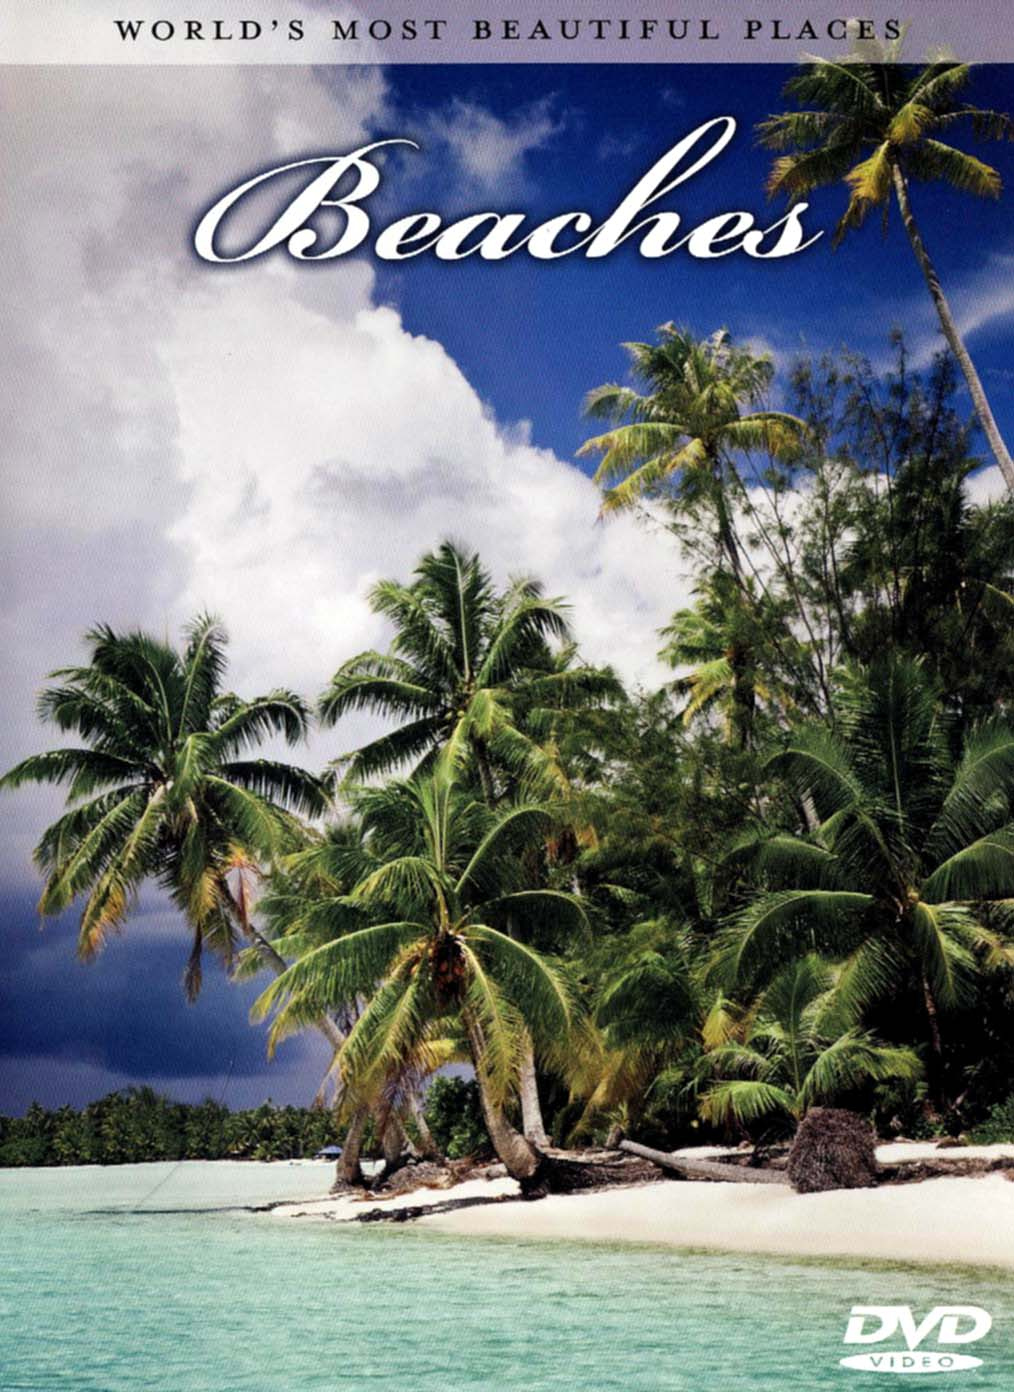 World's Most Beautiful Places: Beaches